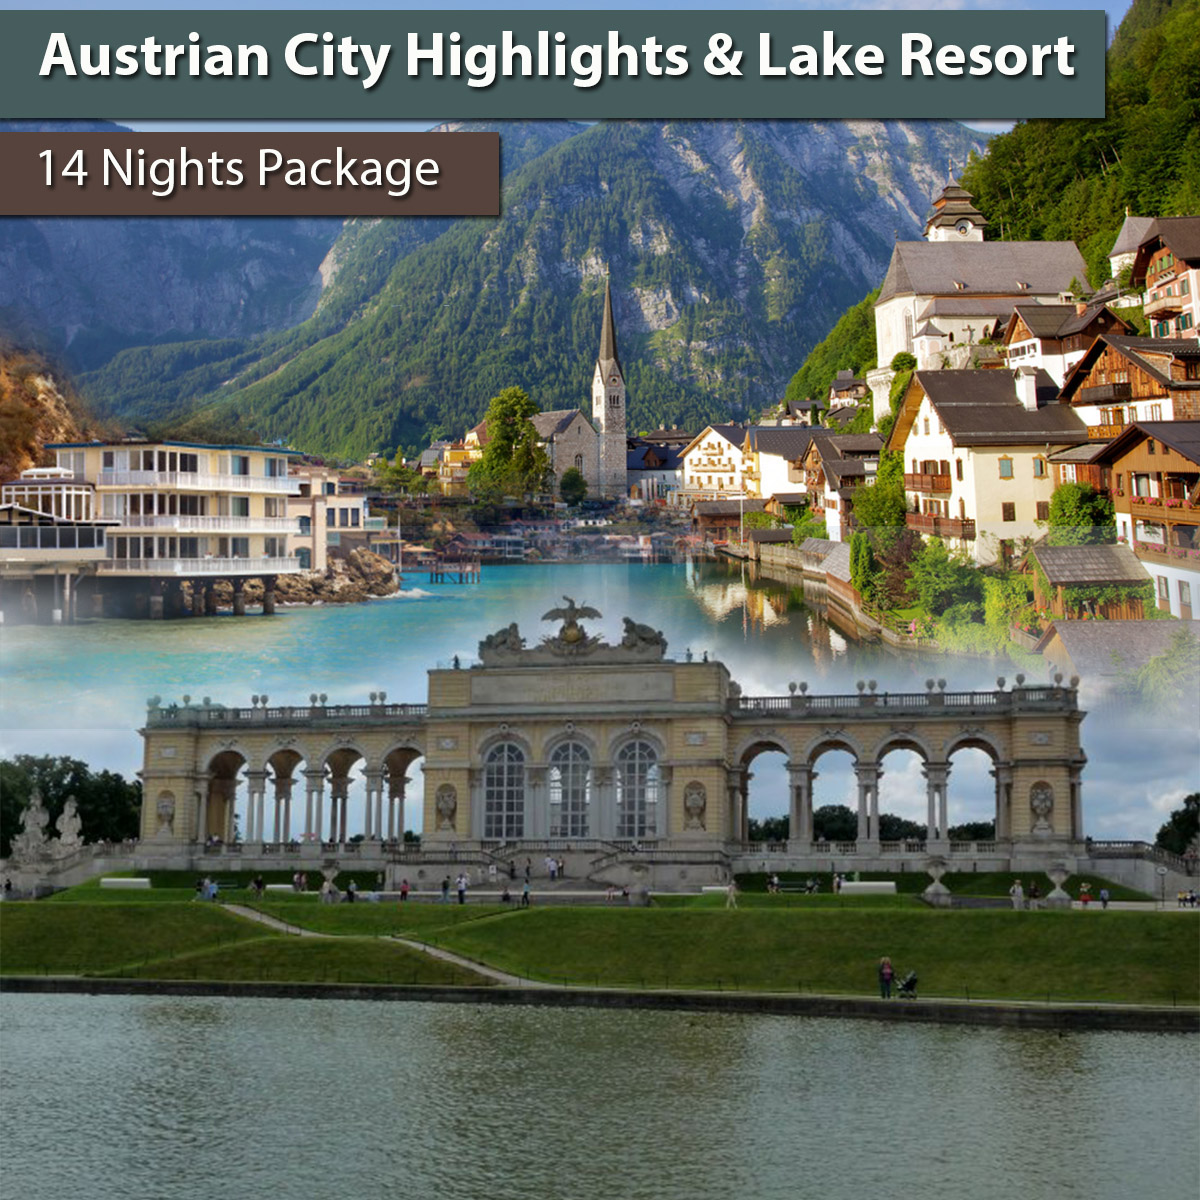 Austrian City Highlights & Lake Resort